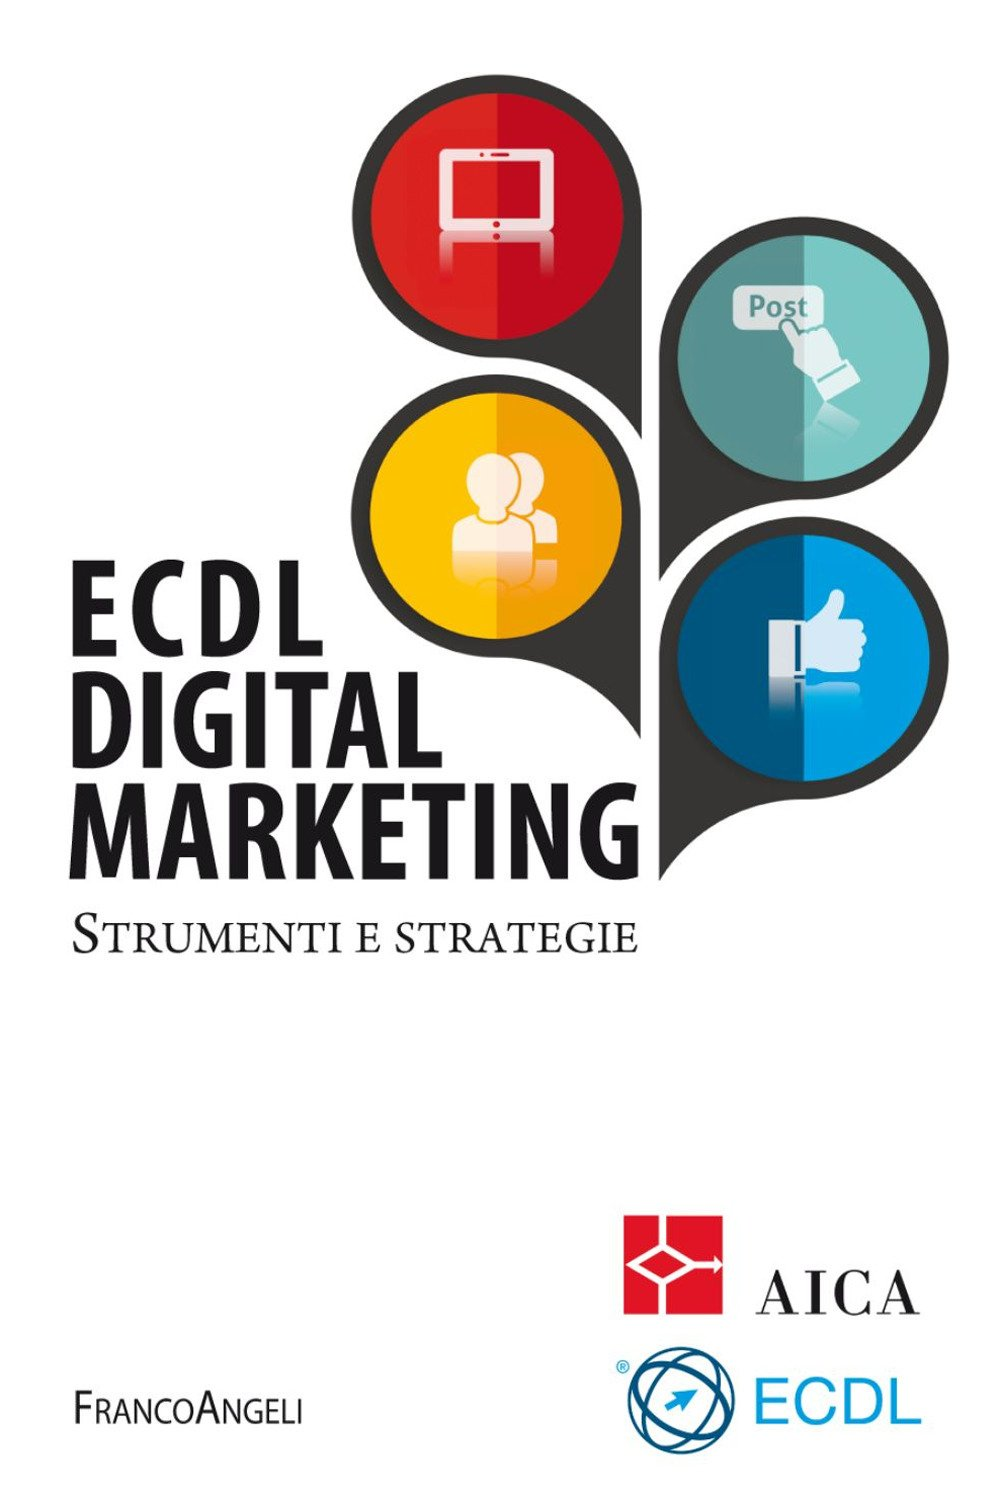 ECDL digital marketing. Strumenti e strategie Copertina flessibile – 14 feb 2018 AICA Franco Angeli 882044741X Informatica